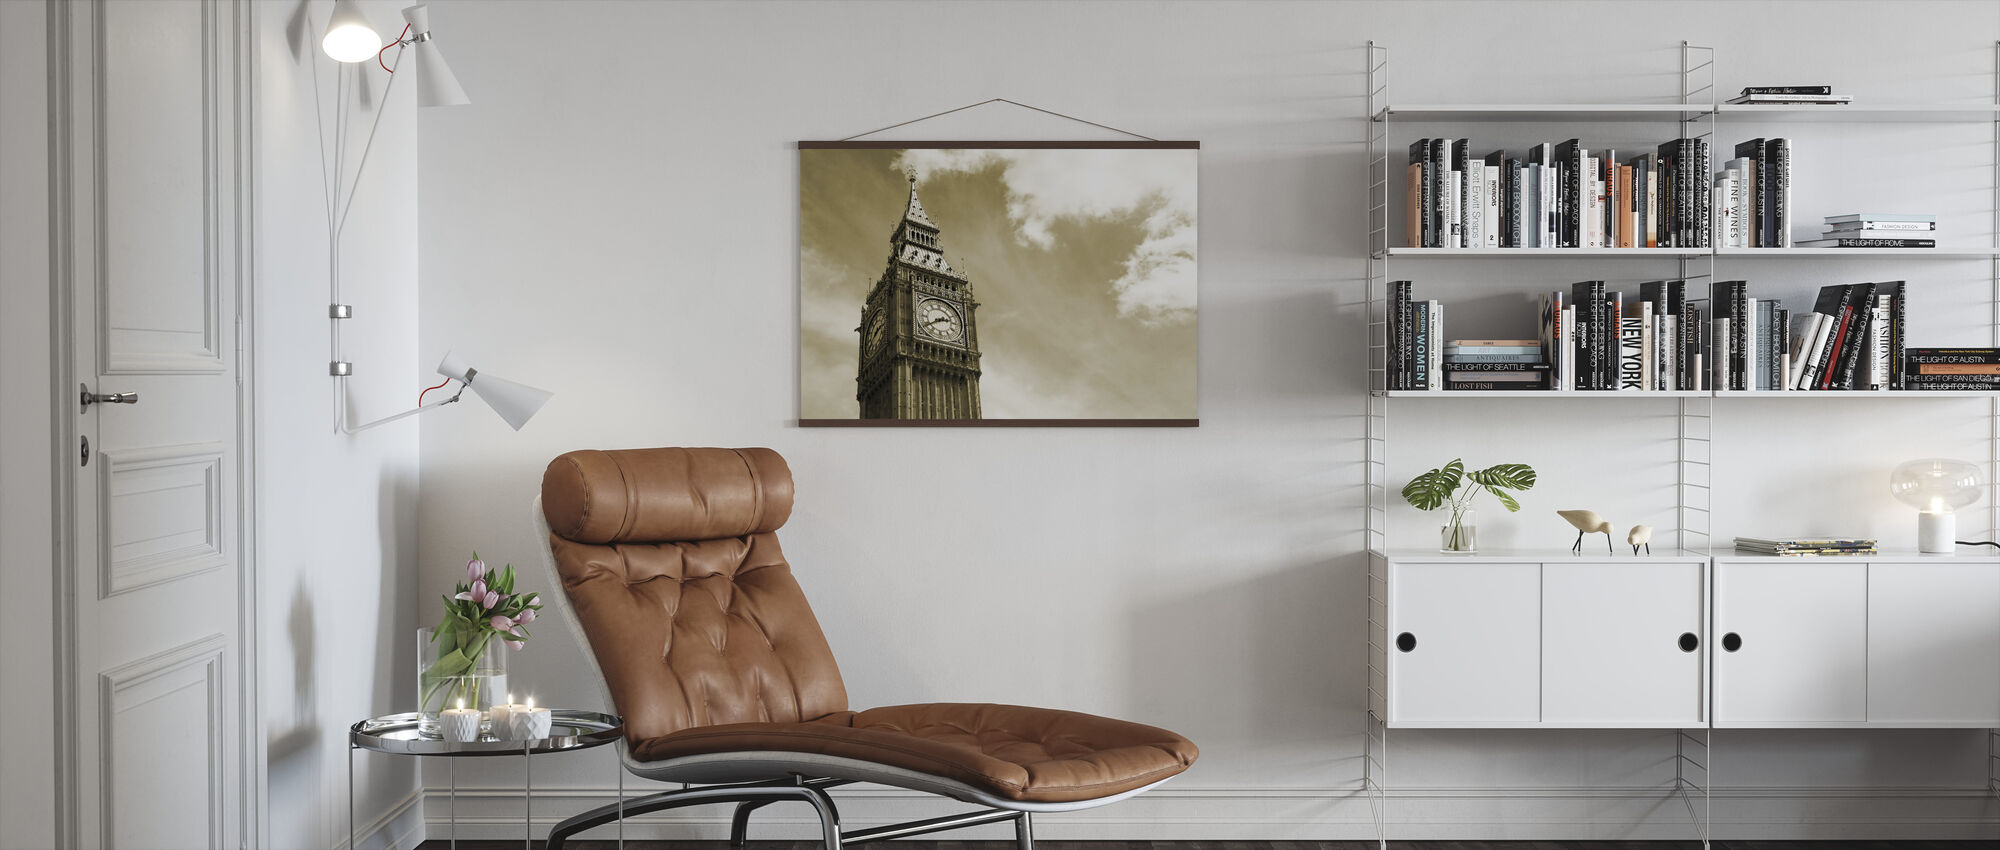 Big Ben, London, UK - Poster - Living Room